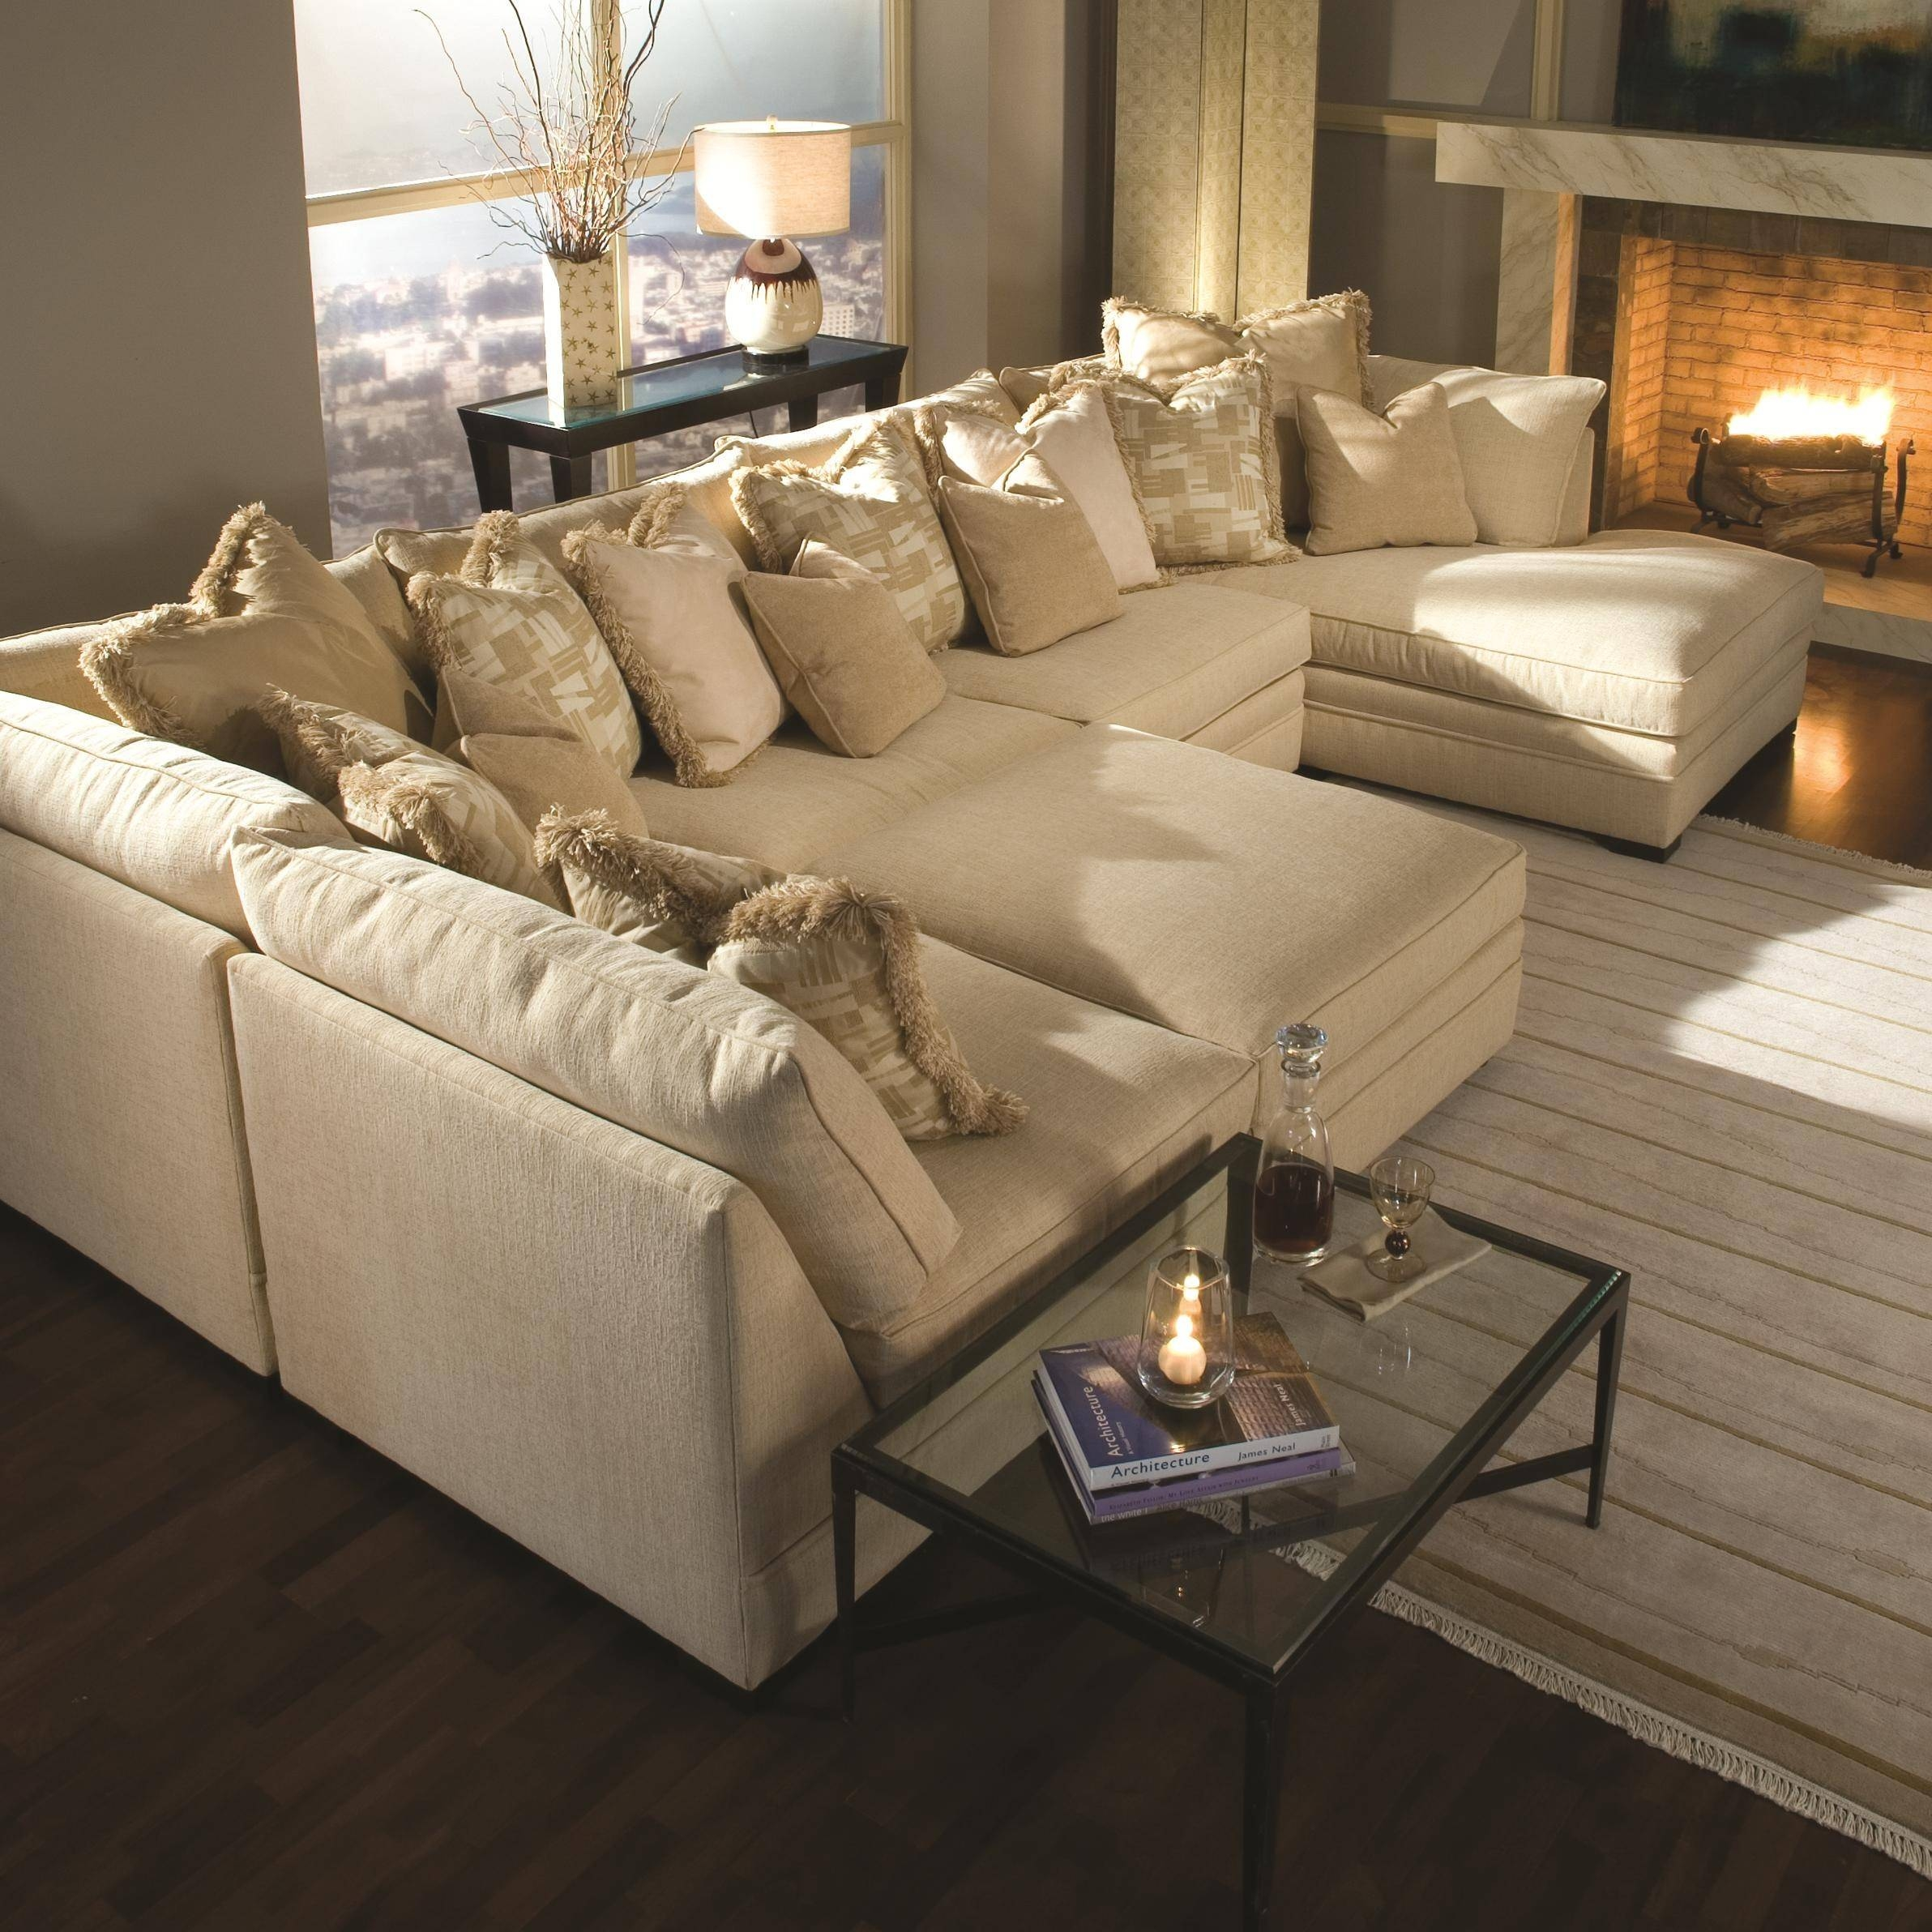 12 Ideas Of 10 Foot Sectional Sofa Within 10 Foot Sectional Sofa (View 8 of 30)